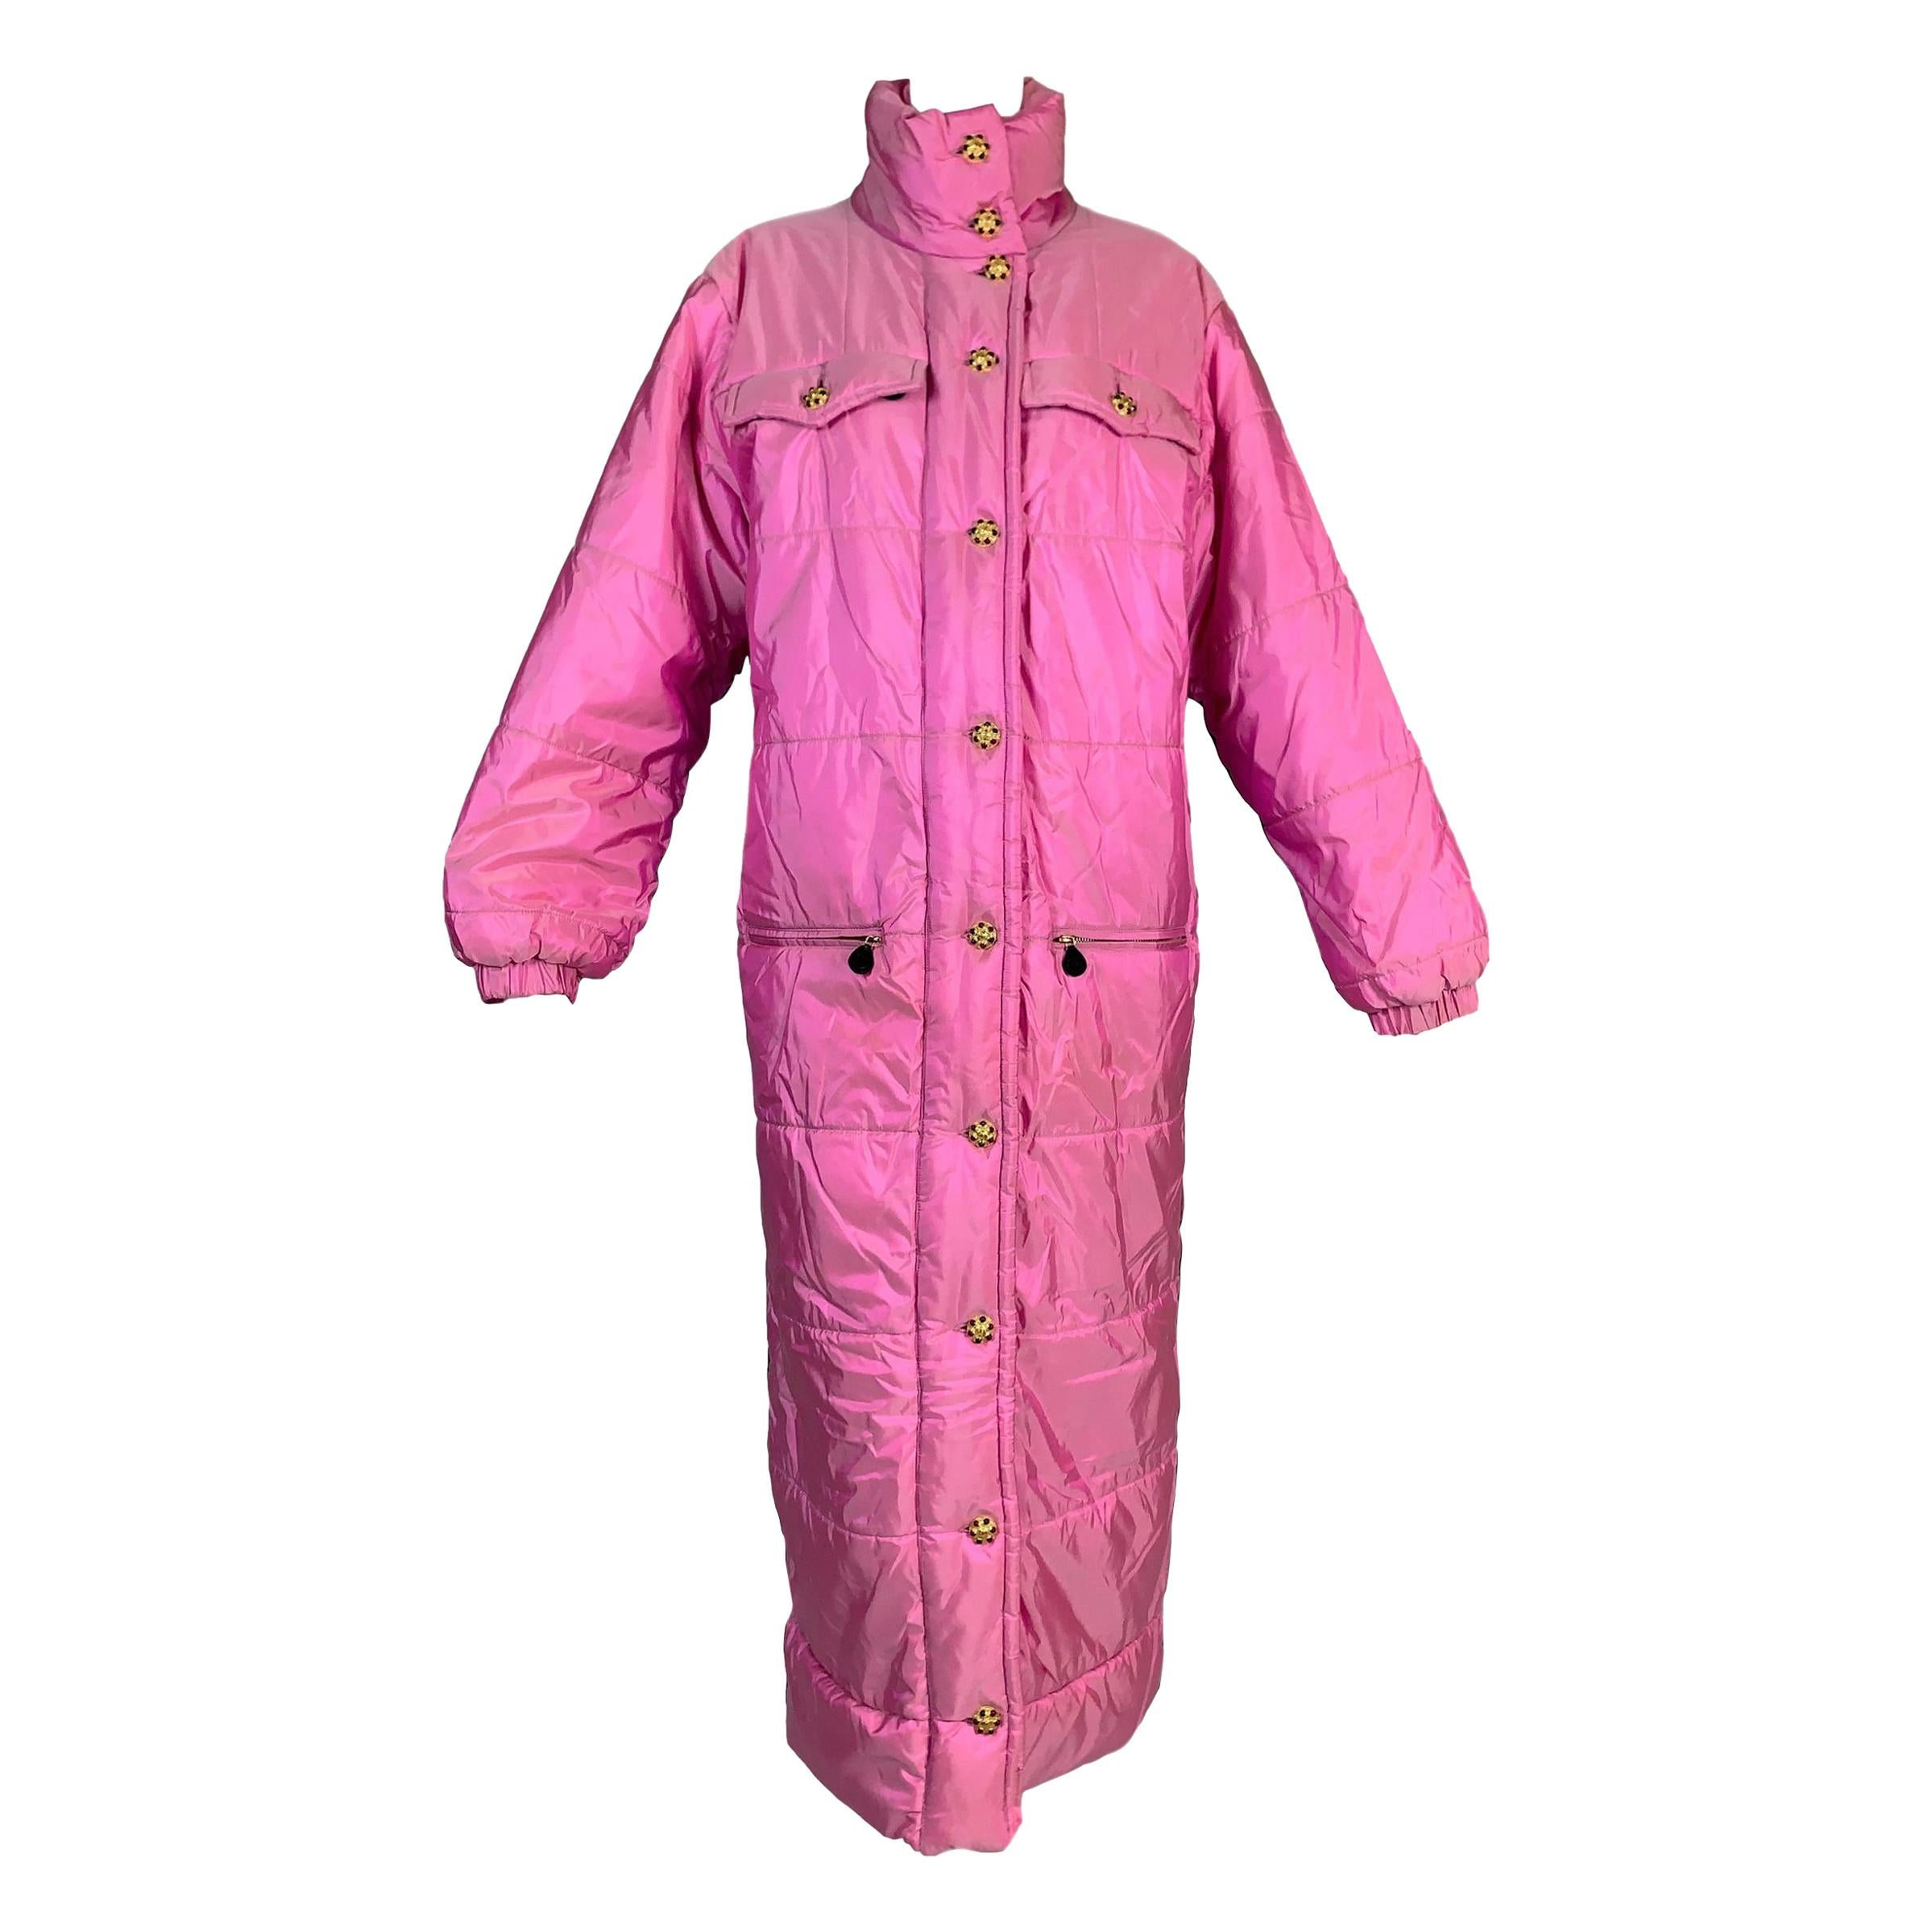 F/W 1996 Chanel Iridescent Pink Logo Gripoix Buttons Long Down Jacket Coat